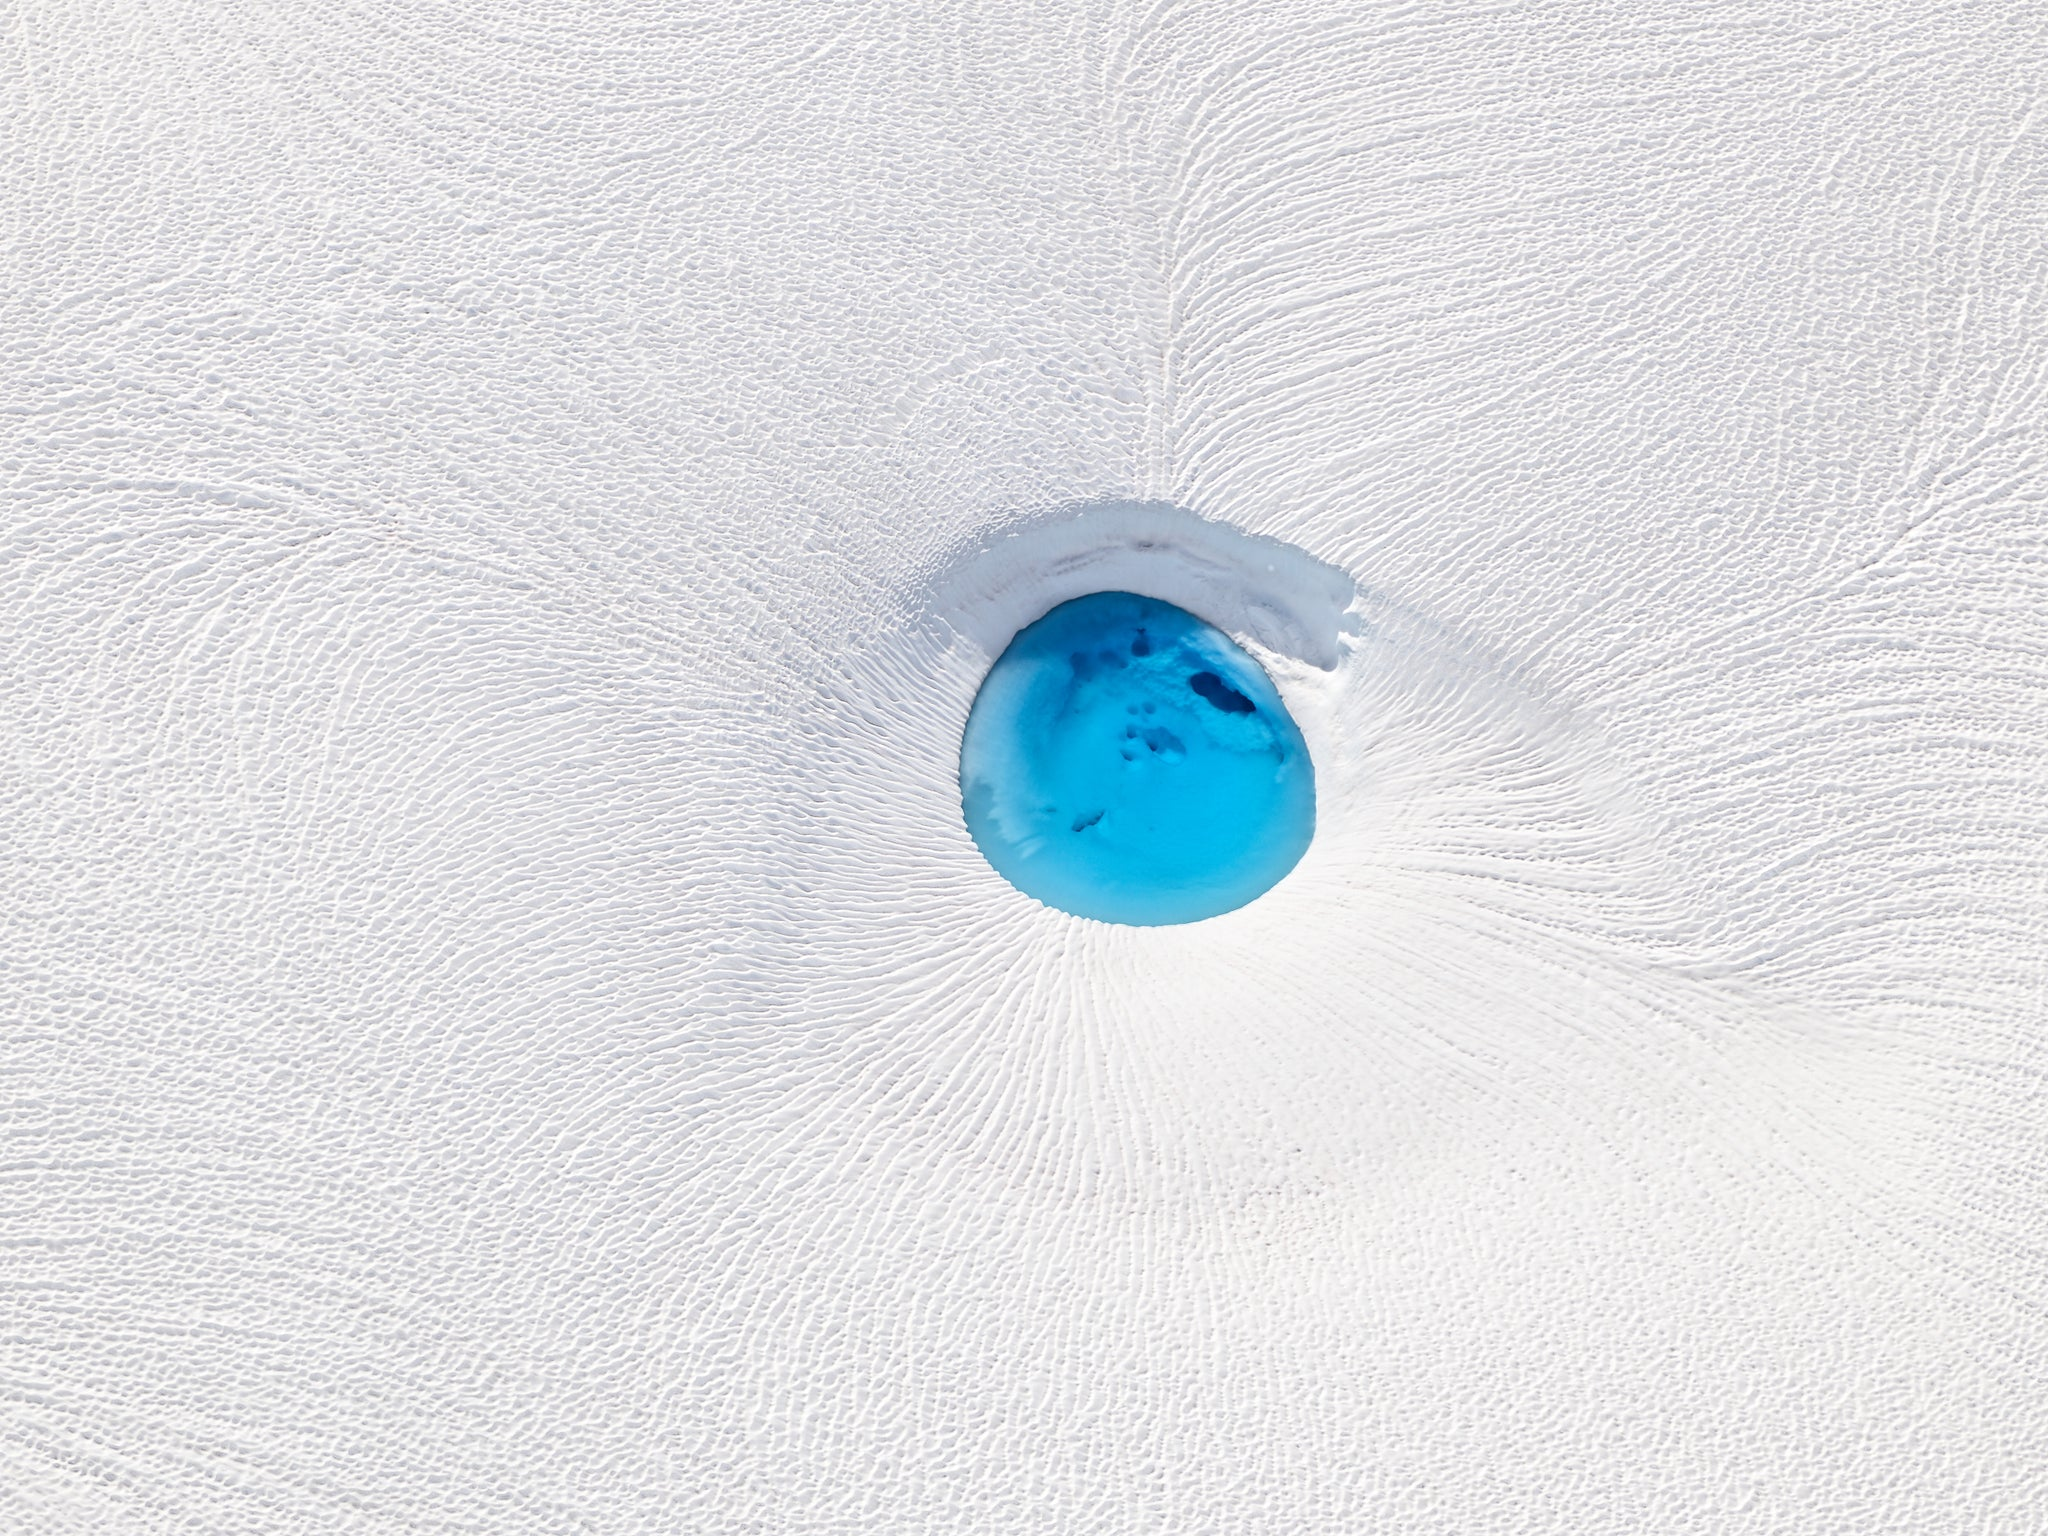 'The Eye of a Glacier'. 2019 by Stas Bartnikas